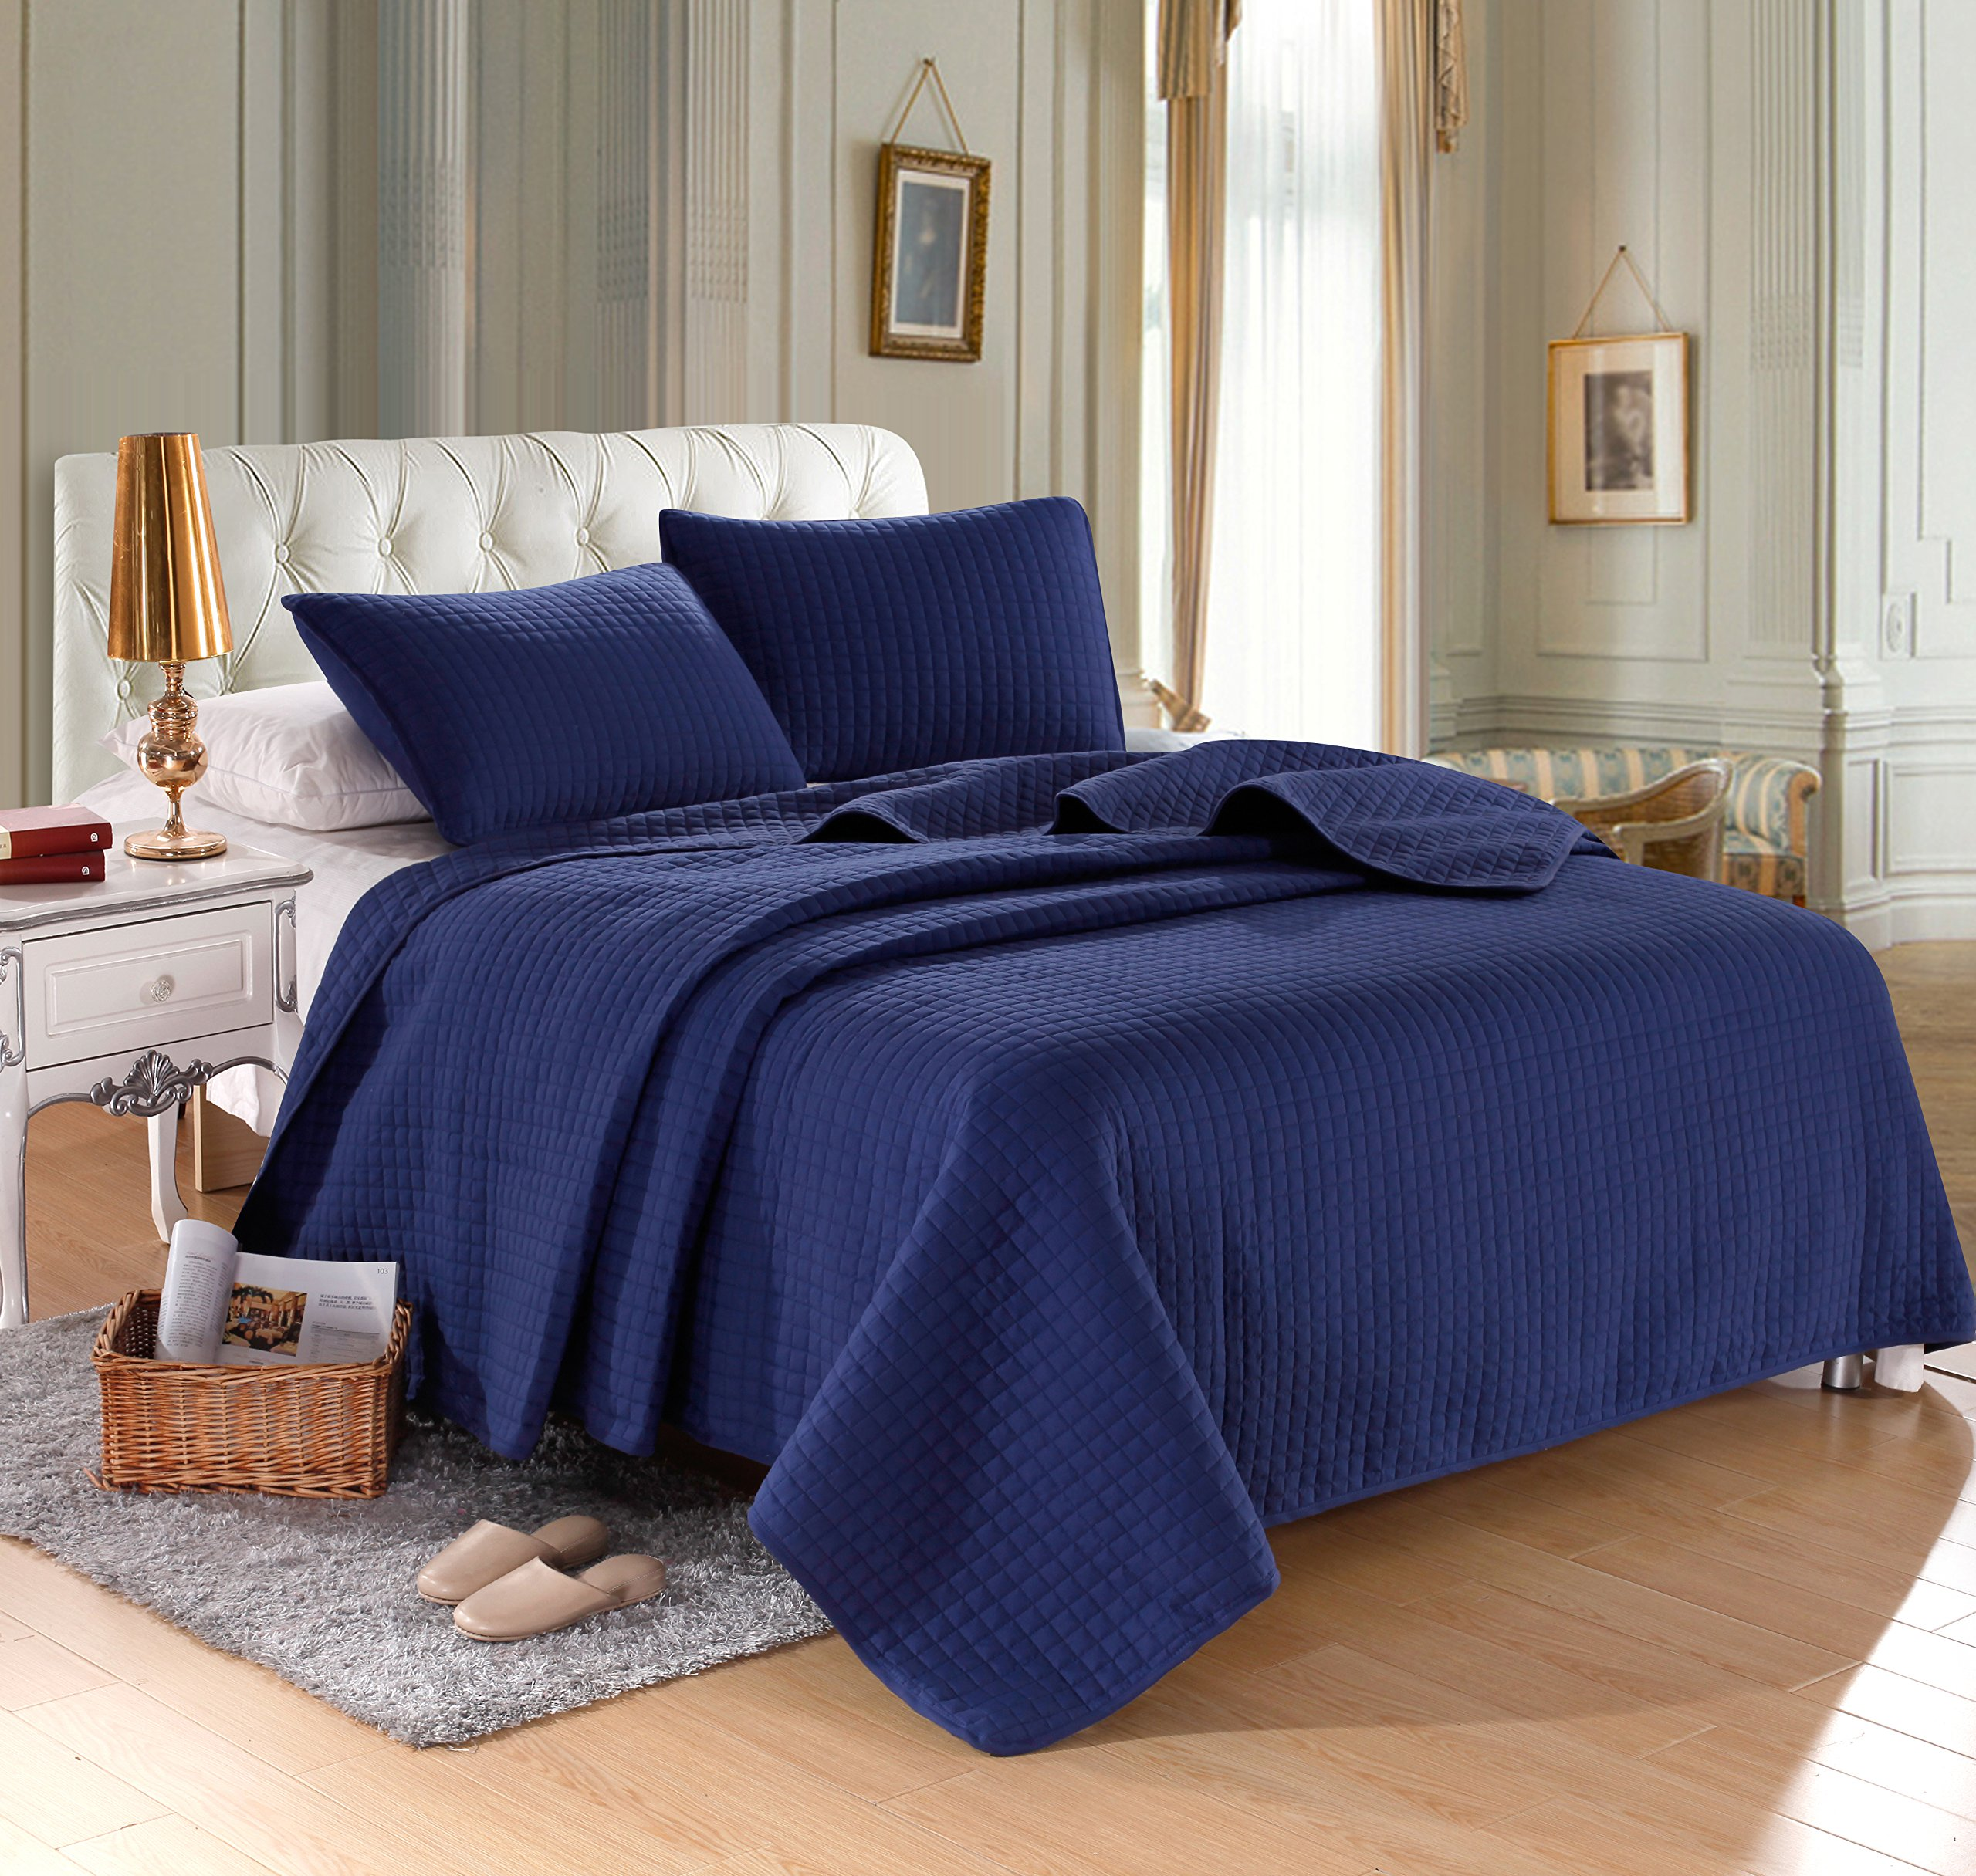 Navy Solid Color Quilt 86''L-86''W, 2 Shams 20''L-26''W (inner 19''-25''). Hypoallergenic, Finely Stitched, All Season, Coverlet, Bed-cover, Washable, Durable.